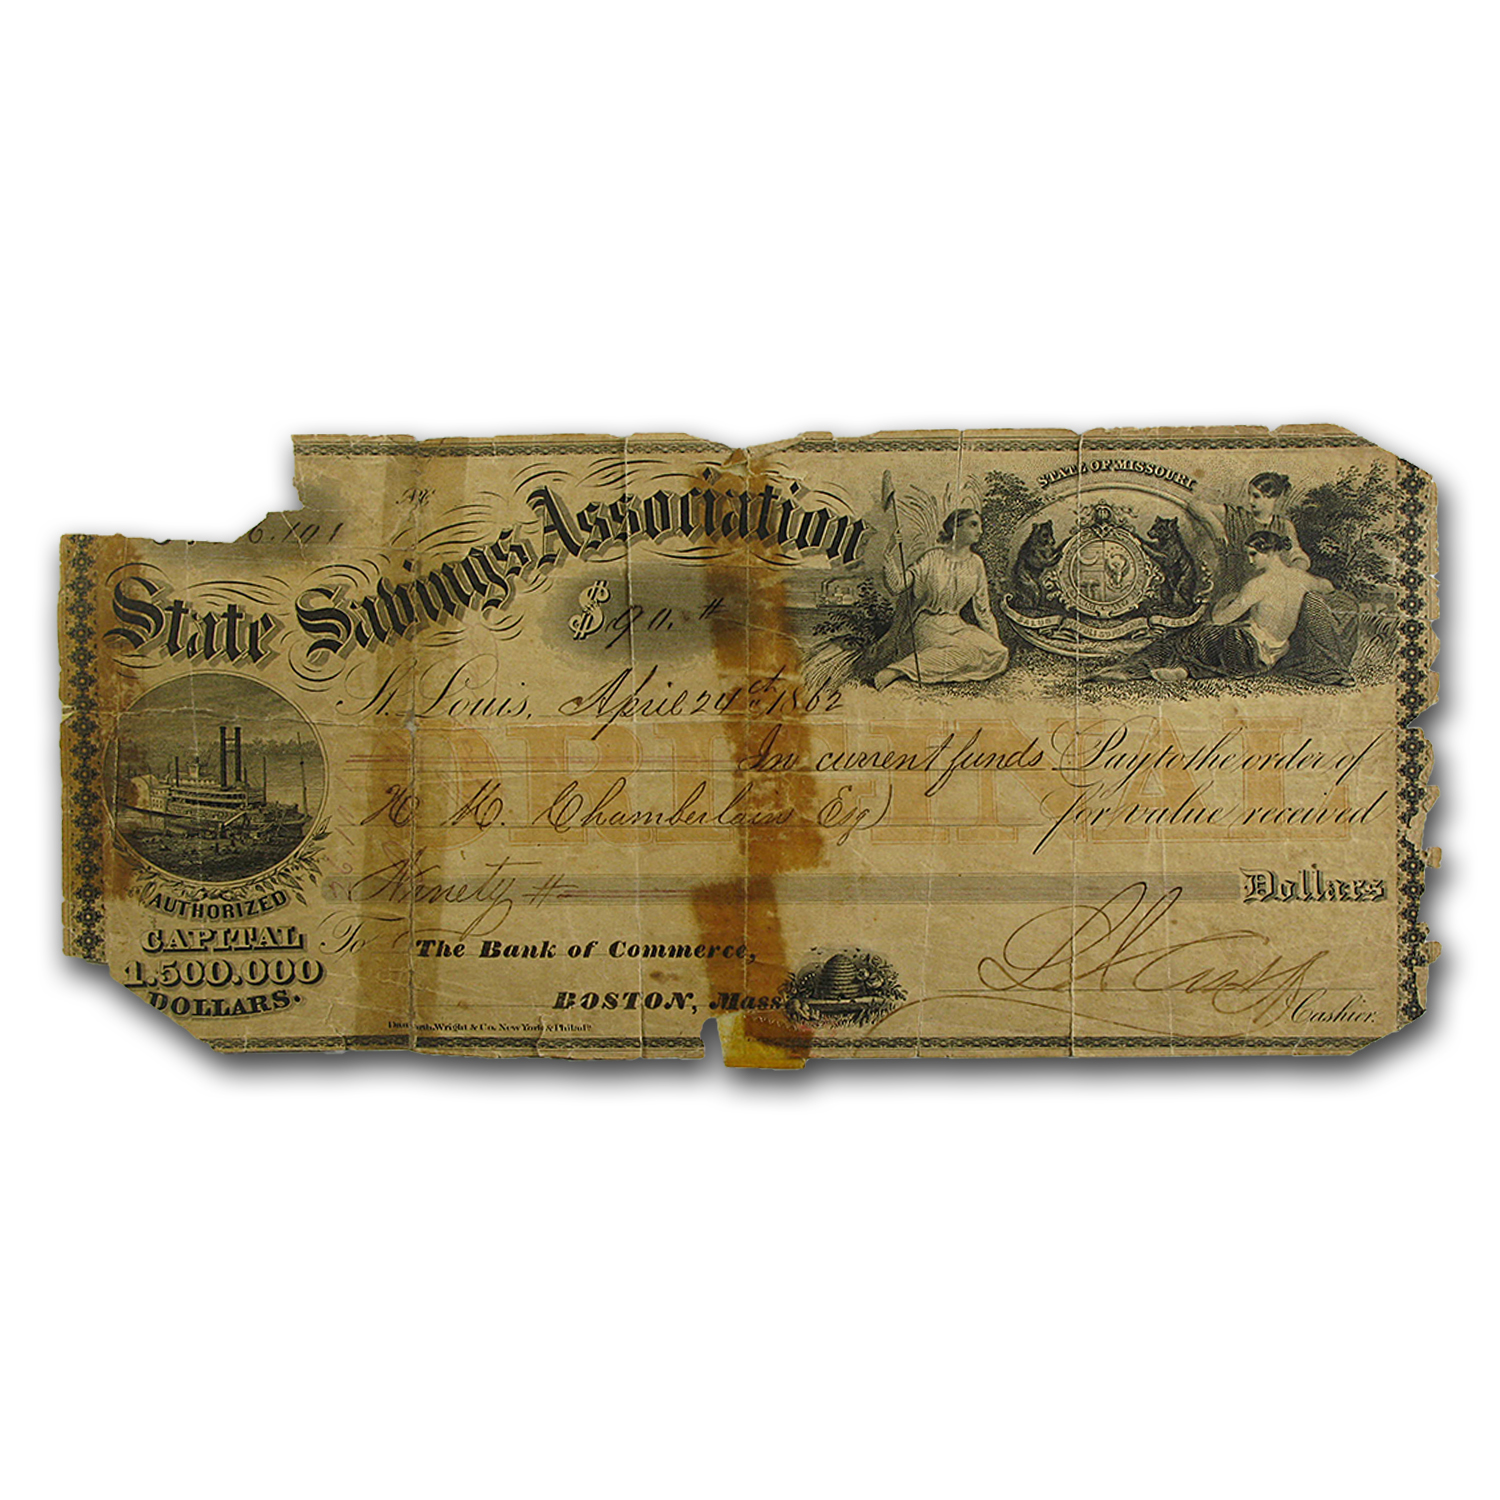 1862 State Savings Assocation of Missouri $90.00